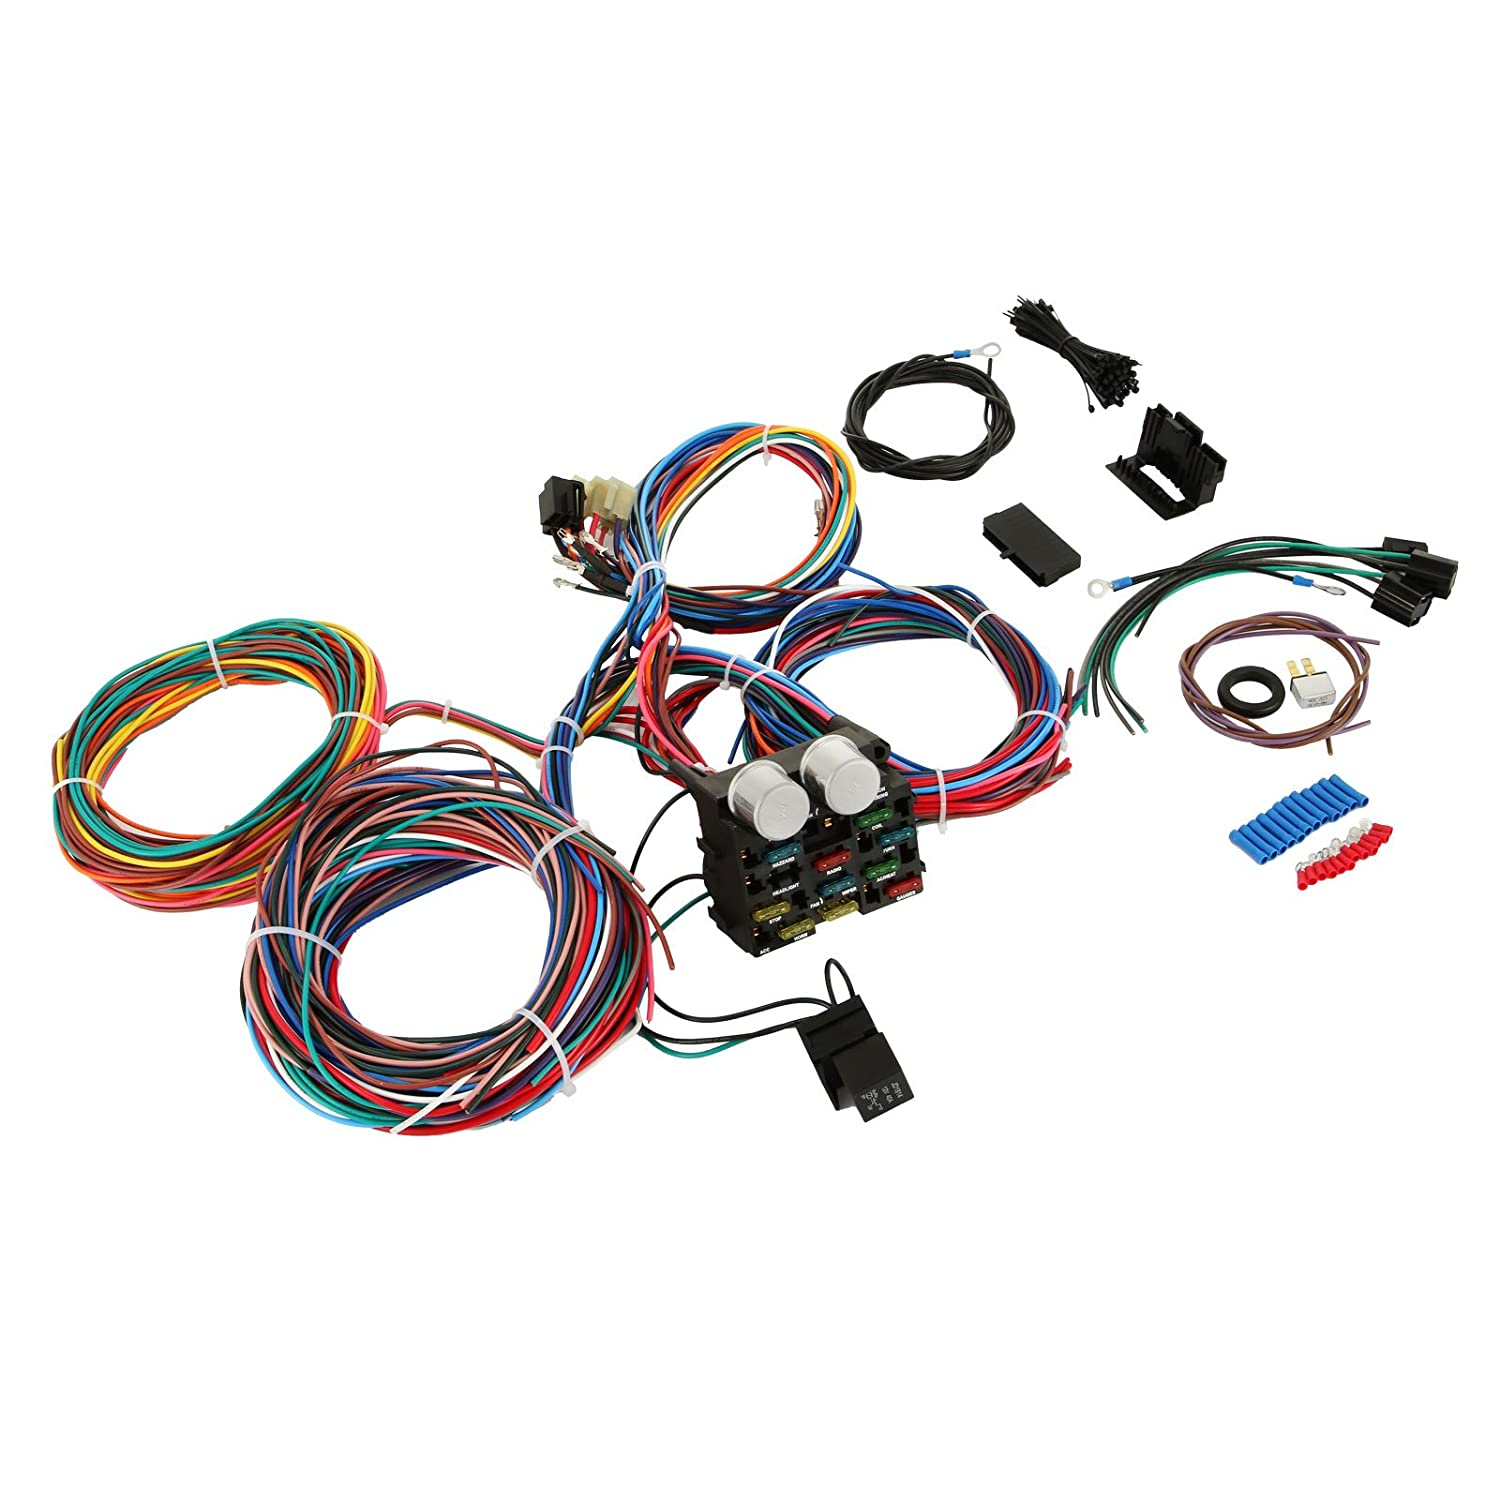 Street Rod Wiring Harness Kit Library Universal Wire Amazoncom Mophorn 12 Circuit Hot Muscle